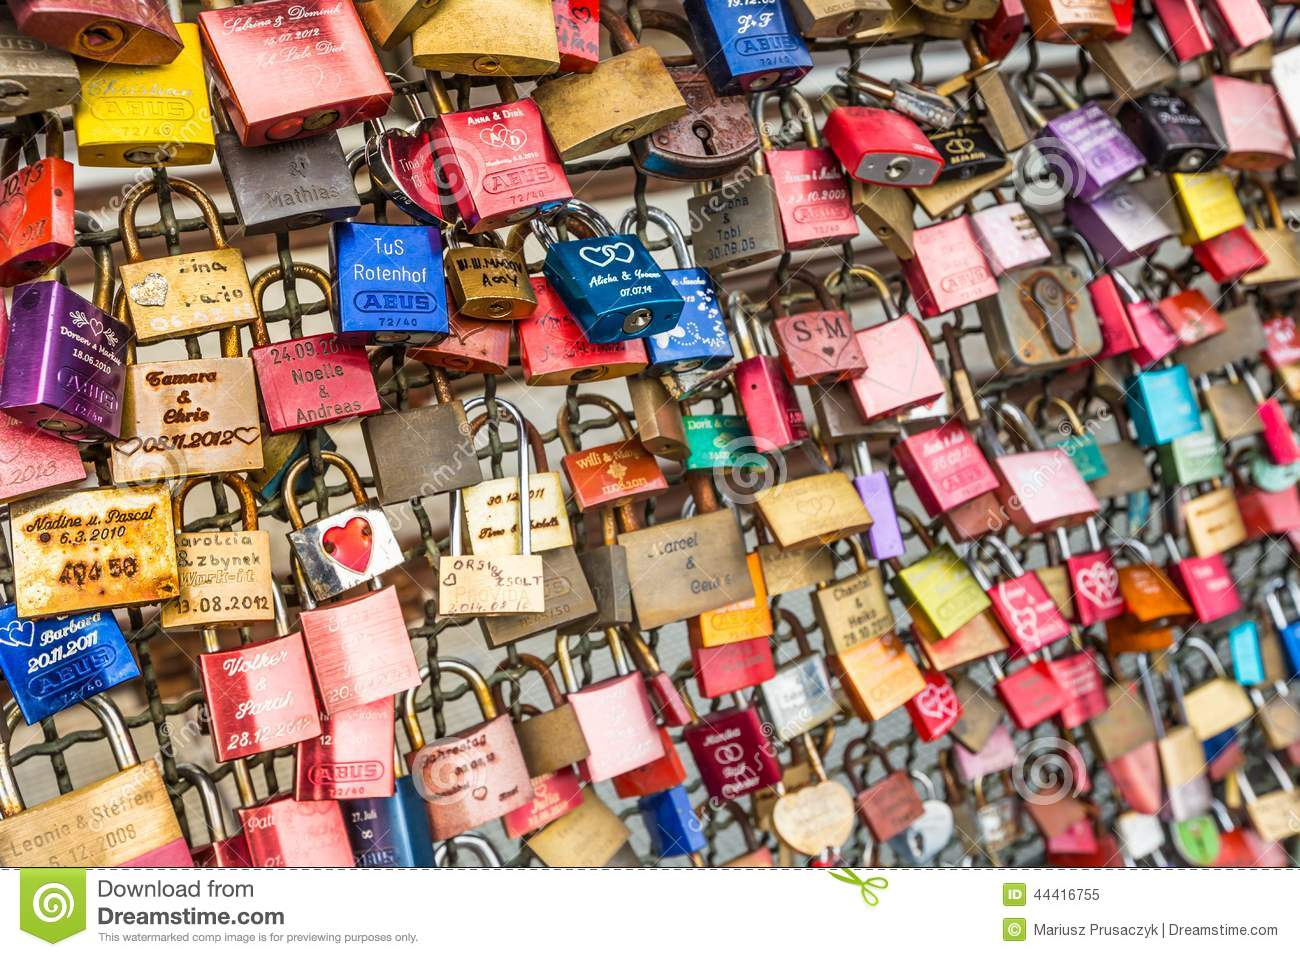 COLOGNE, GERMANY - AUGUST 26, 2014, Thousands of love locks which sweethearts lock to the Hohenzollern Bridge to symbolize their